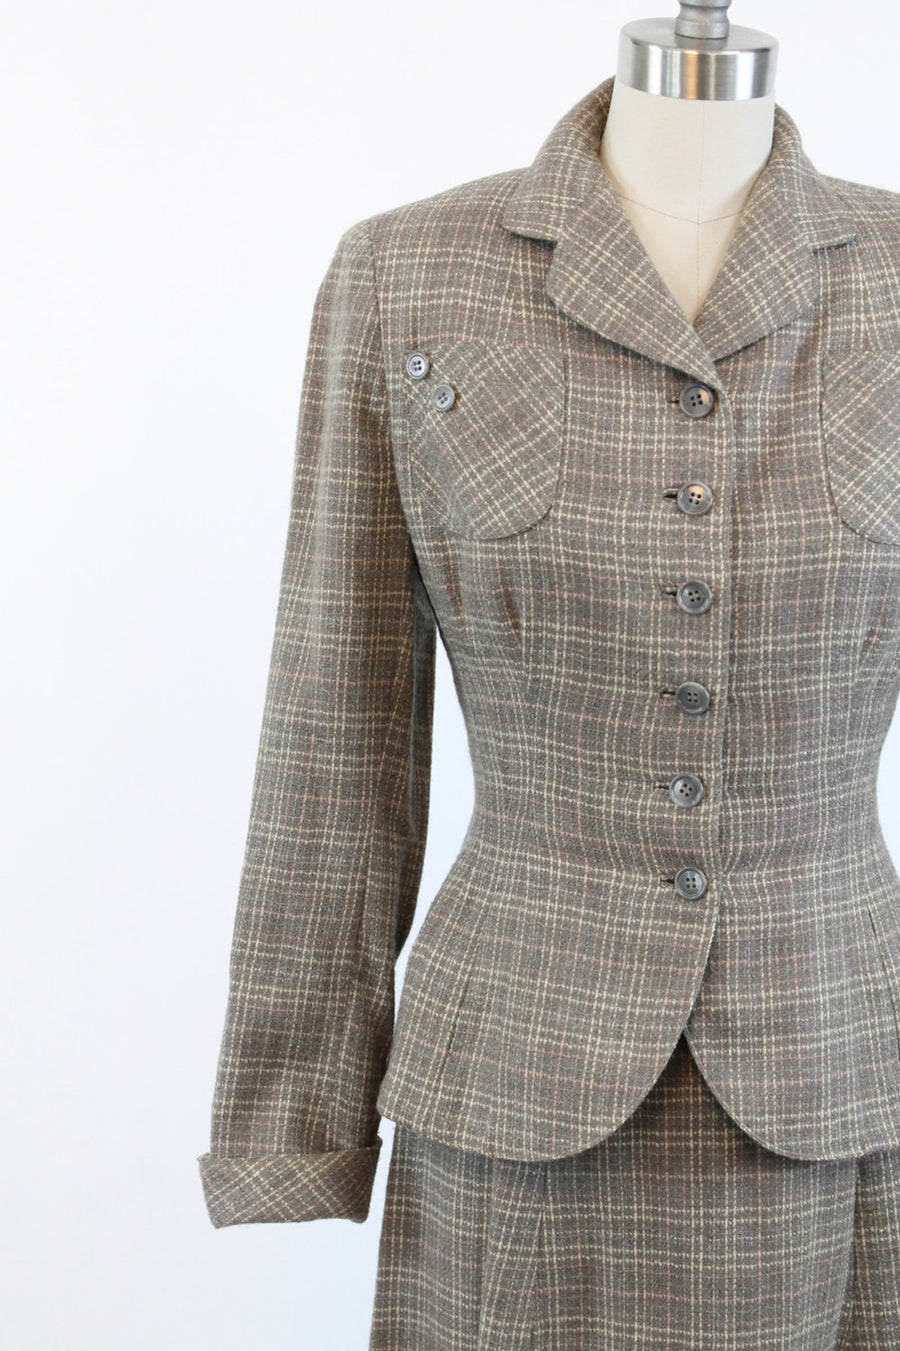 1950s plaid wool suit xs | vintage peplum jacket and skirt